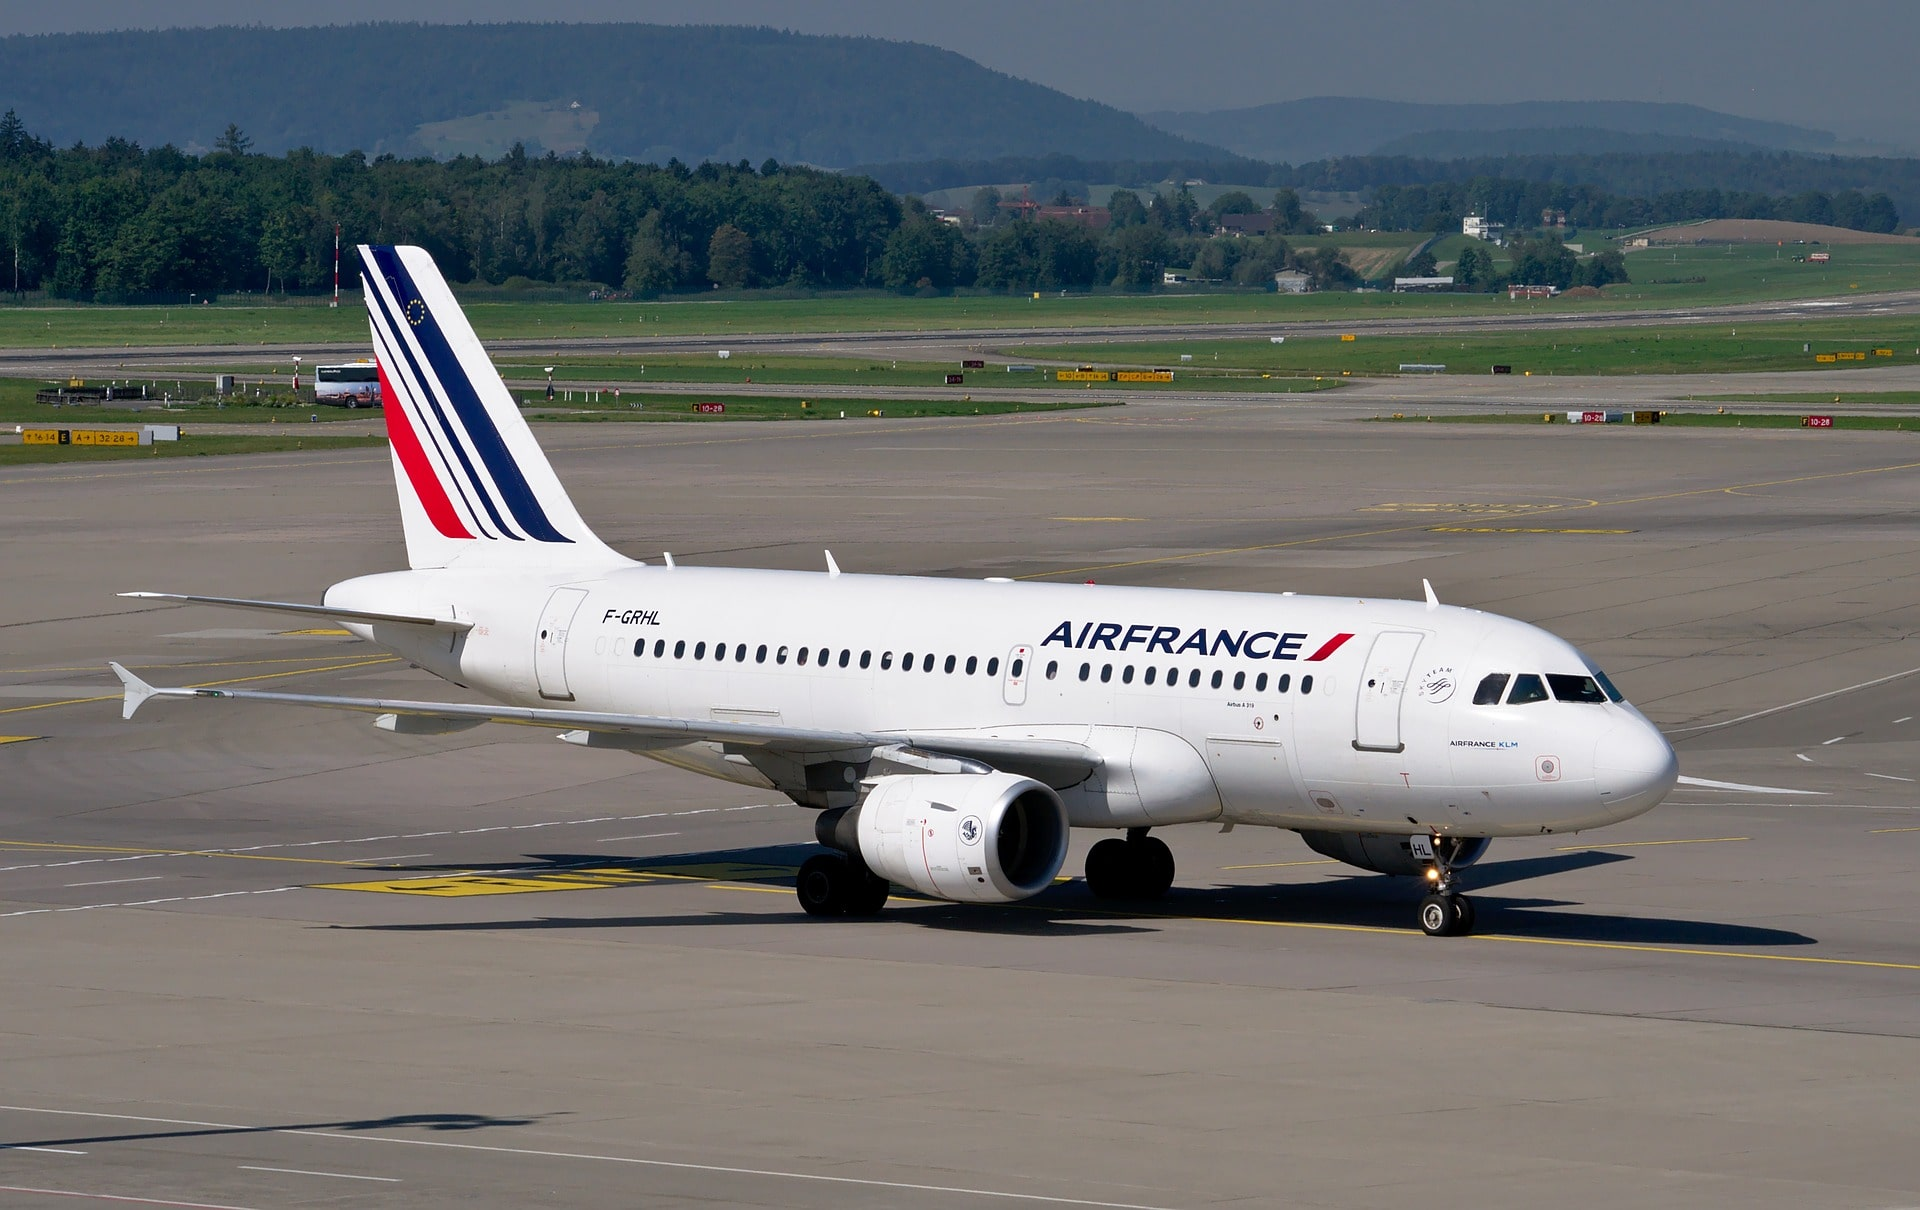 Transportation in France involves multiple budget airlines